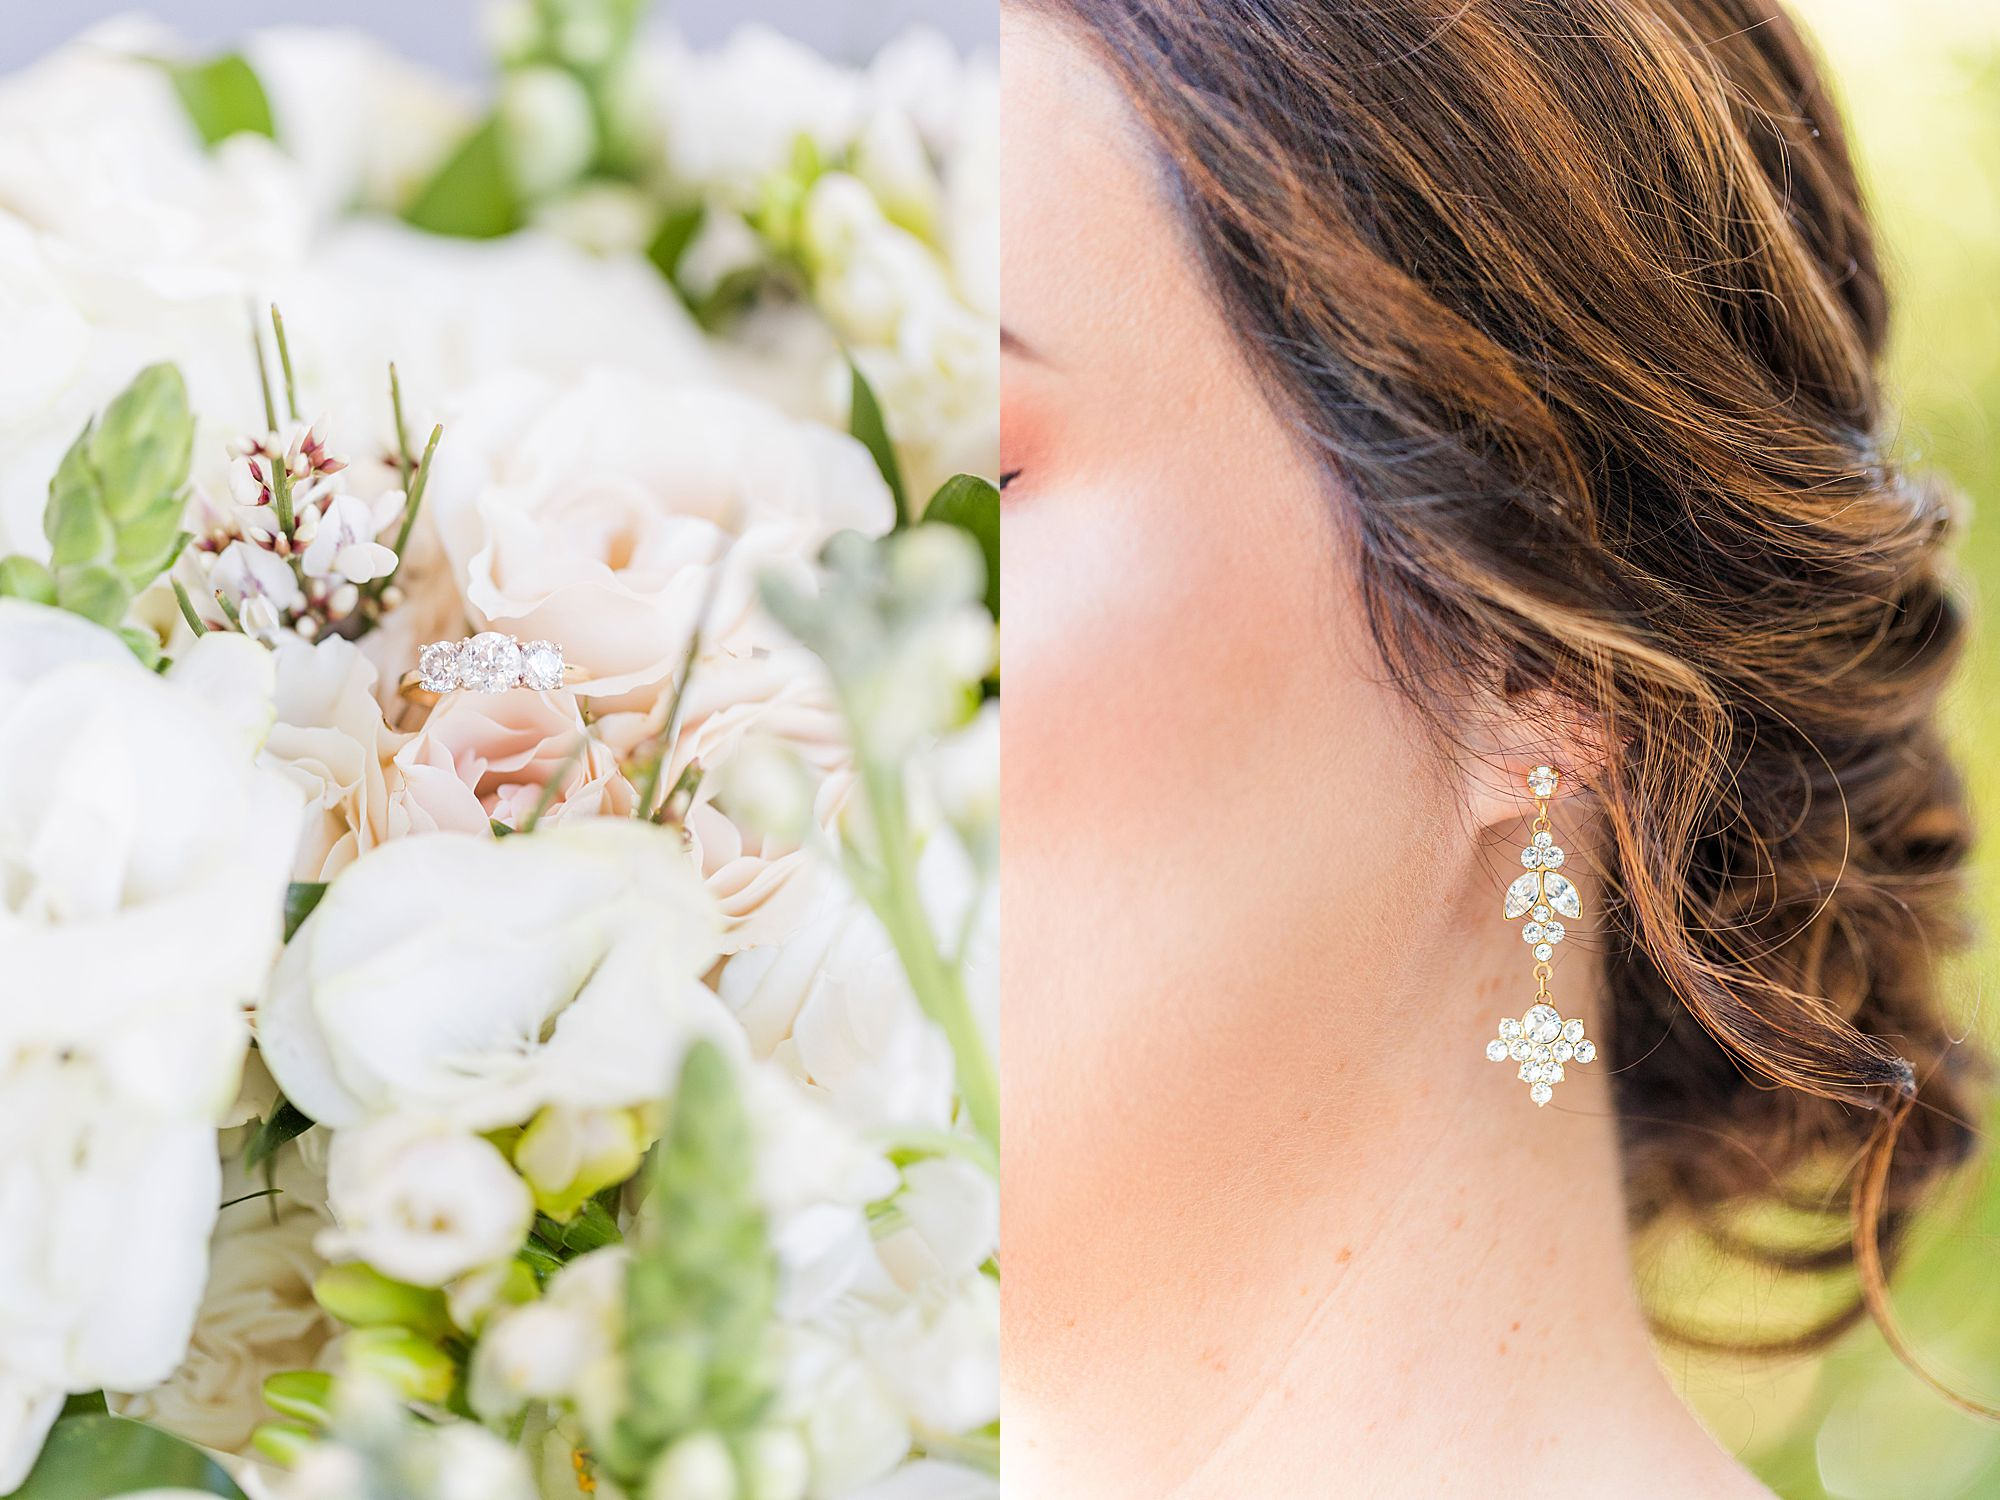 Bridal portraits detail photos of jewelry